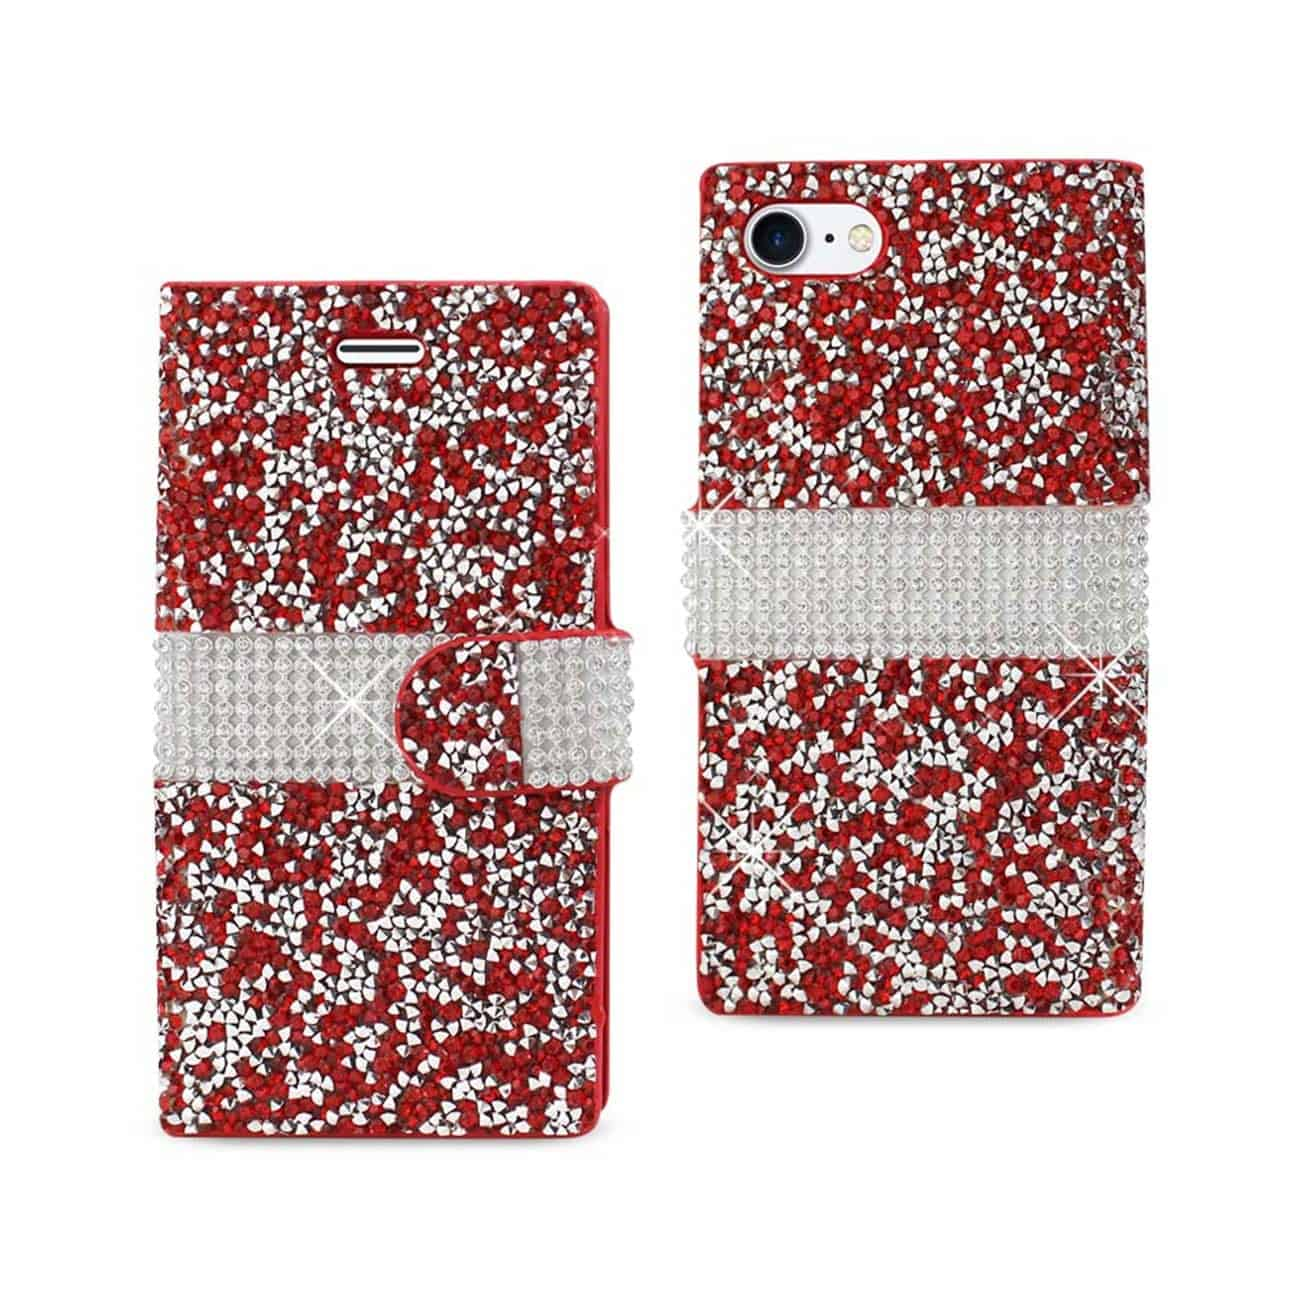 IPHONE 7 JEWELRY RHINESTONE WALLET CASE IN RED